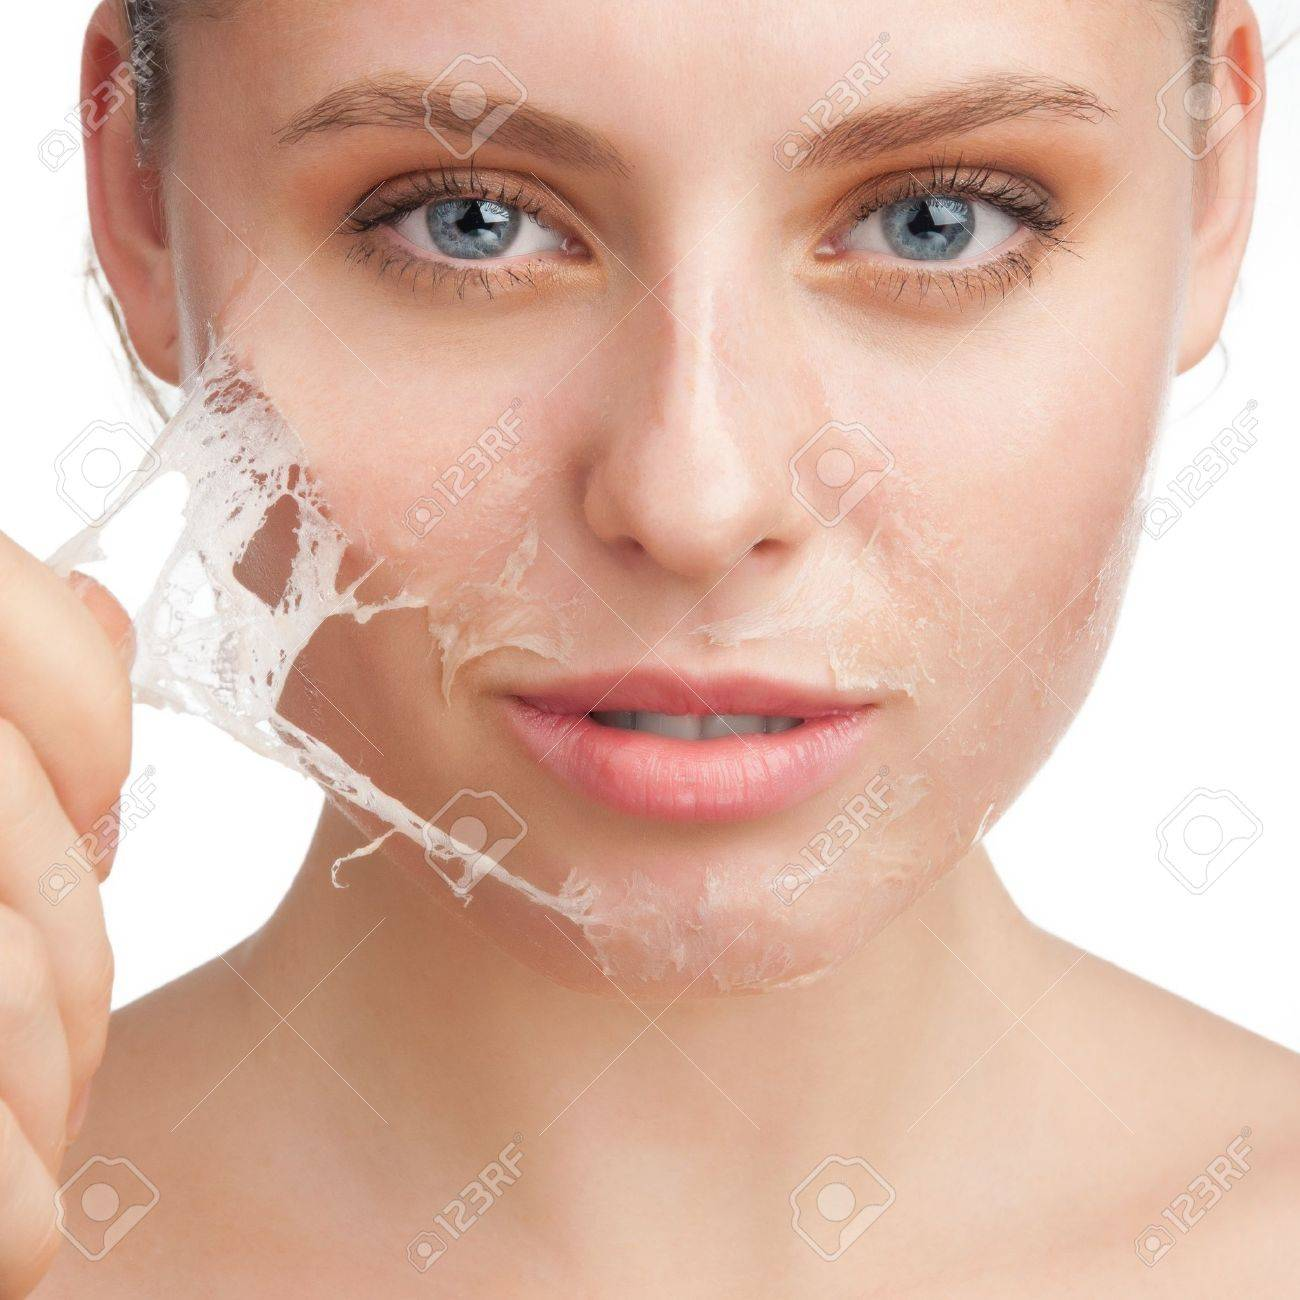 Close-up of beautiful young woman removing old damaged skin from her face Stock Photo - 11741848